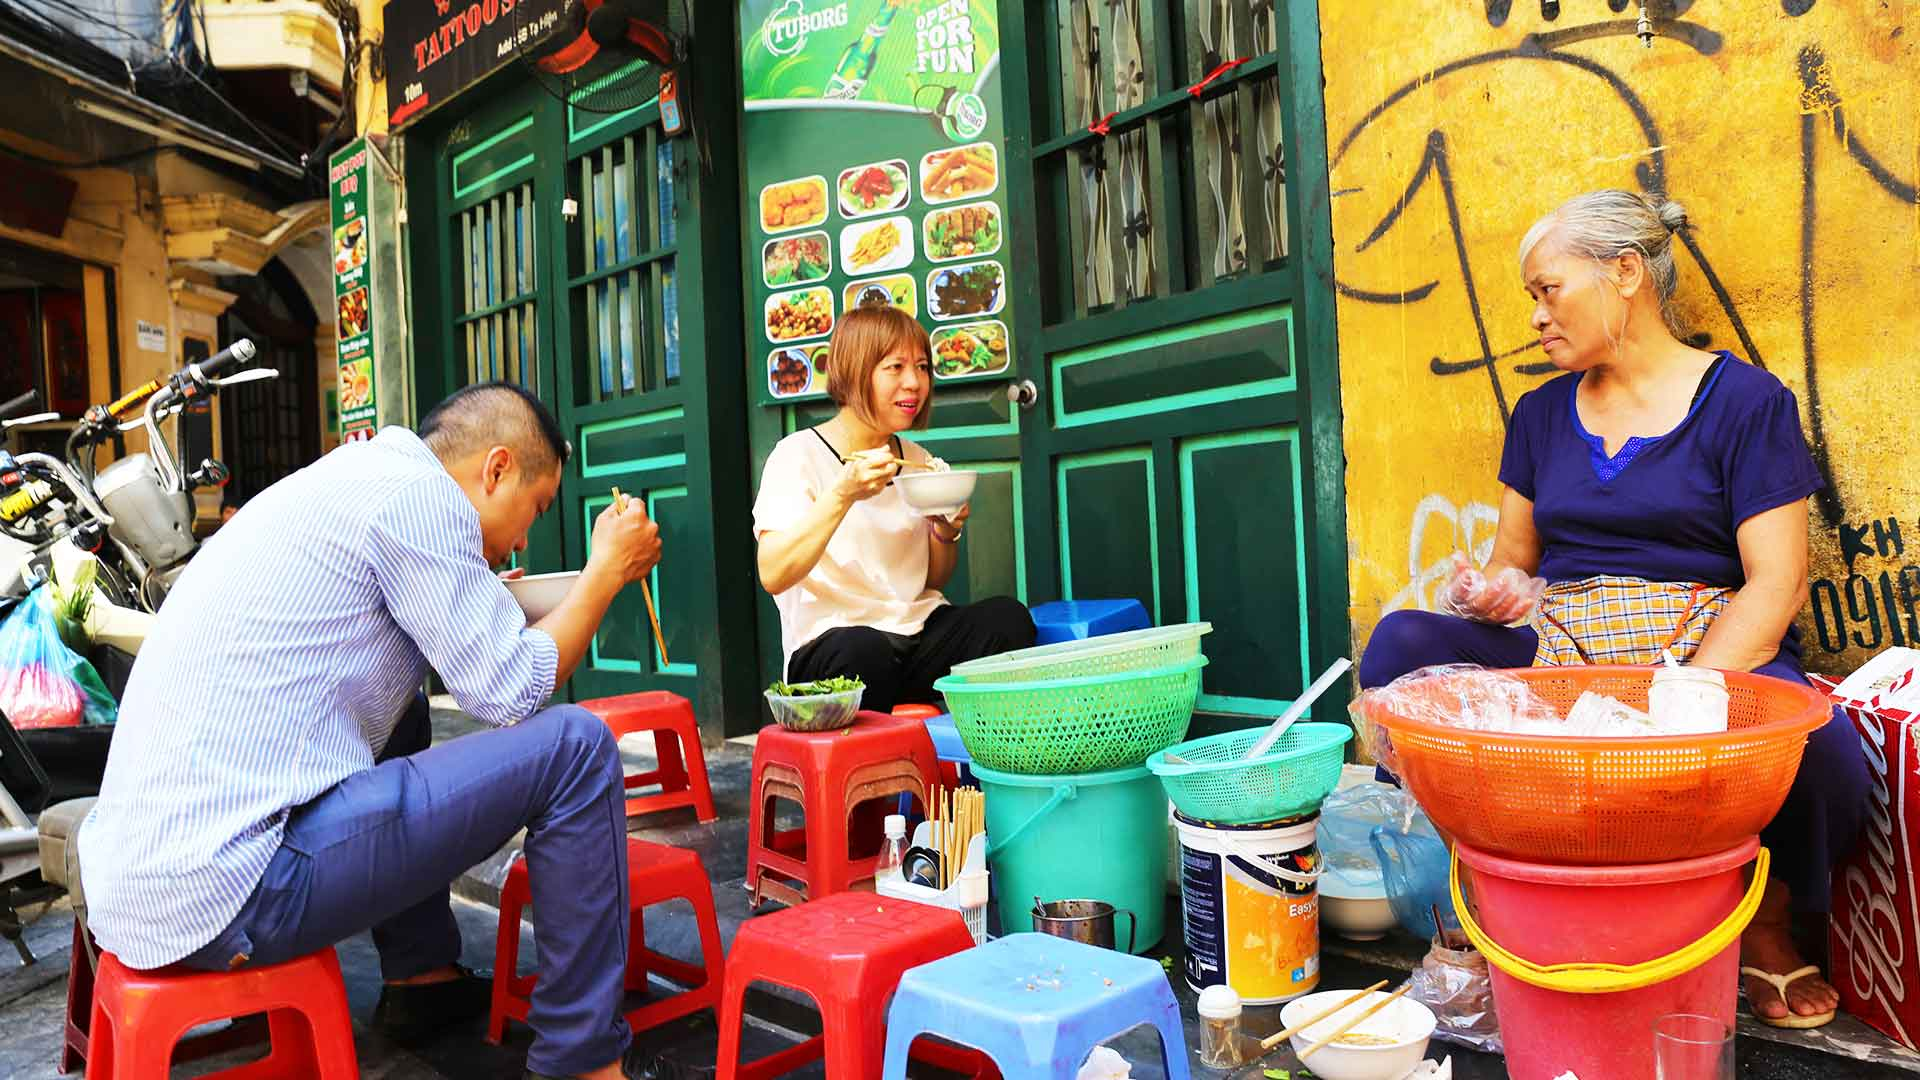 Traditional Vietnamese Noodles - Hanoi Vietnam - Southeast Asian Civilization - Dr Steven Martin Photo Journal